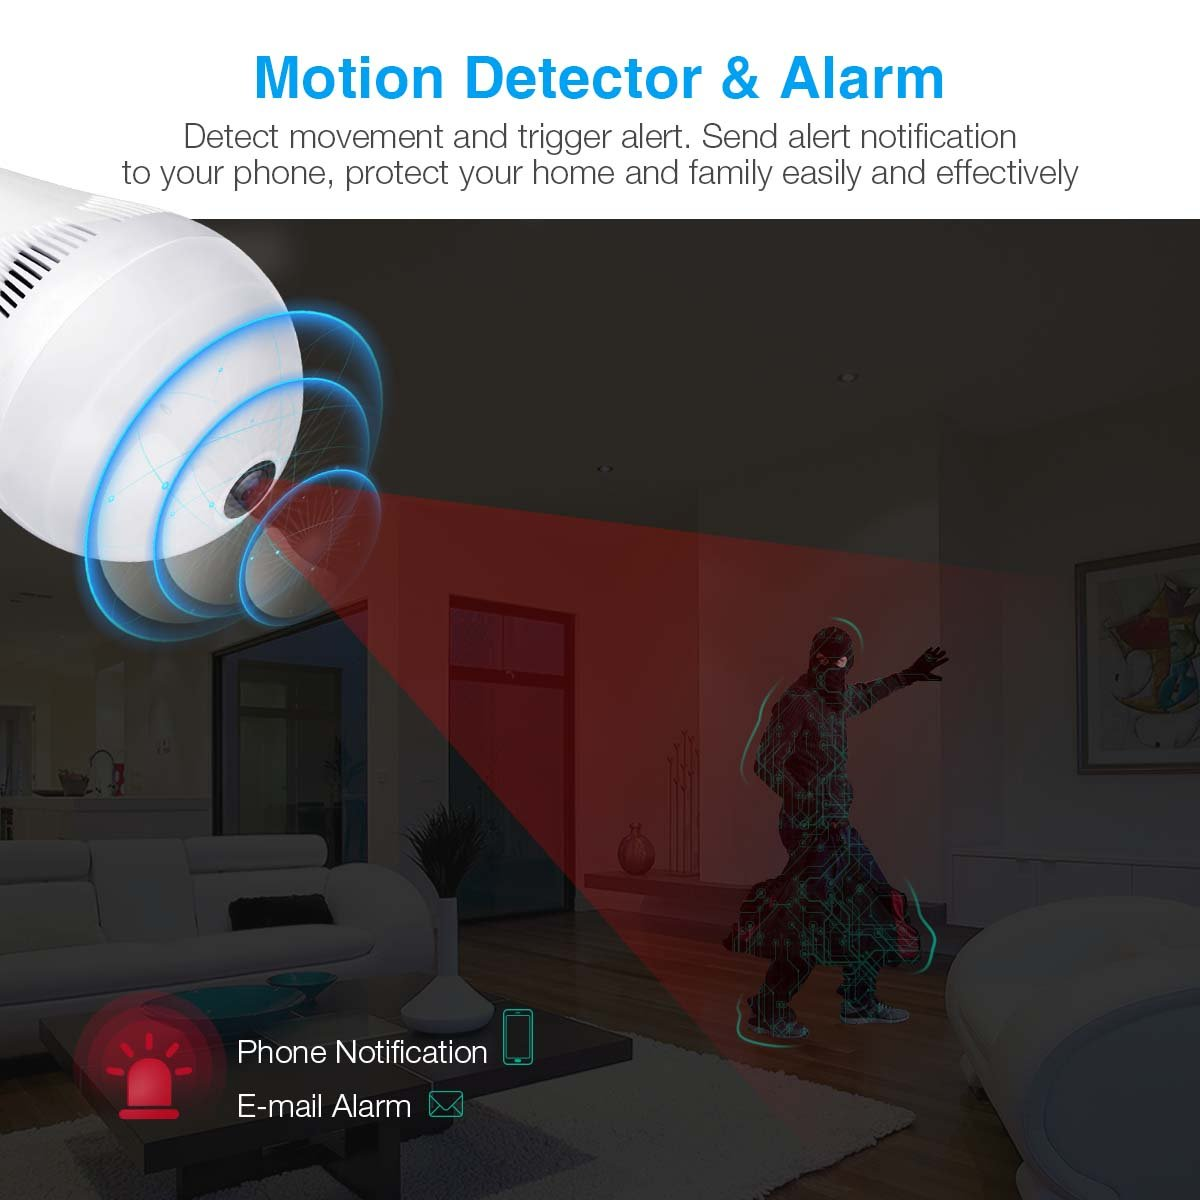 Wireless Security Bulb Camera, FirstPower 960P Home Security Surveillance Camera 360 Panoramic IP Camera with Night Vision Two Way Talking Motion Detection for Android IOS Phone by FirstPower (Image #8)